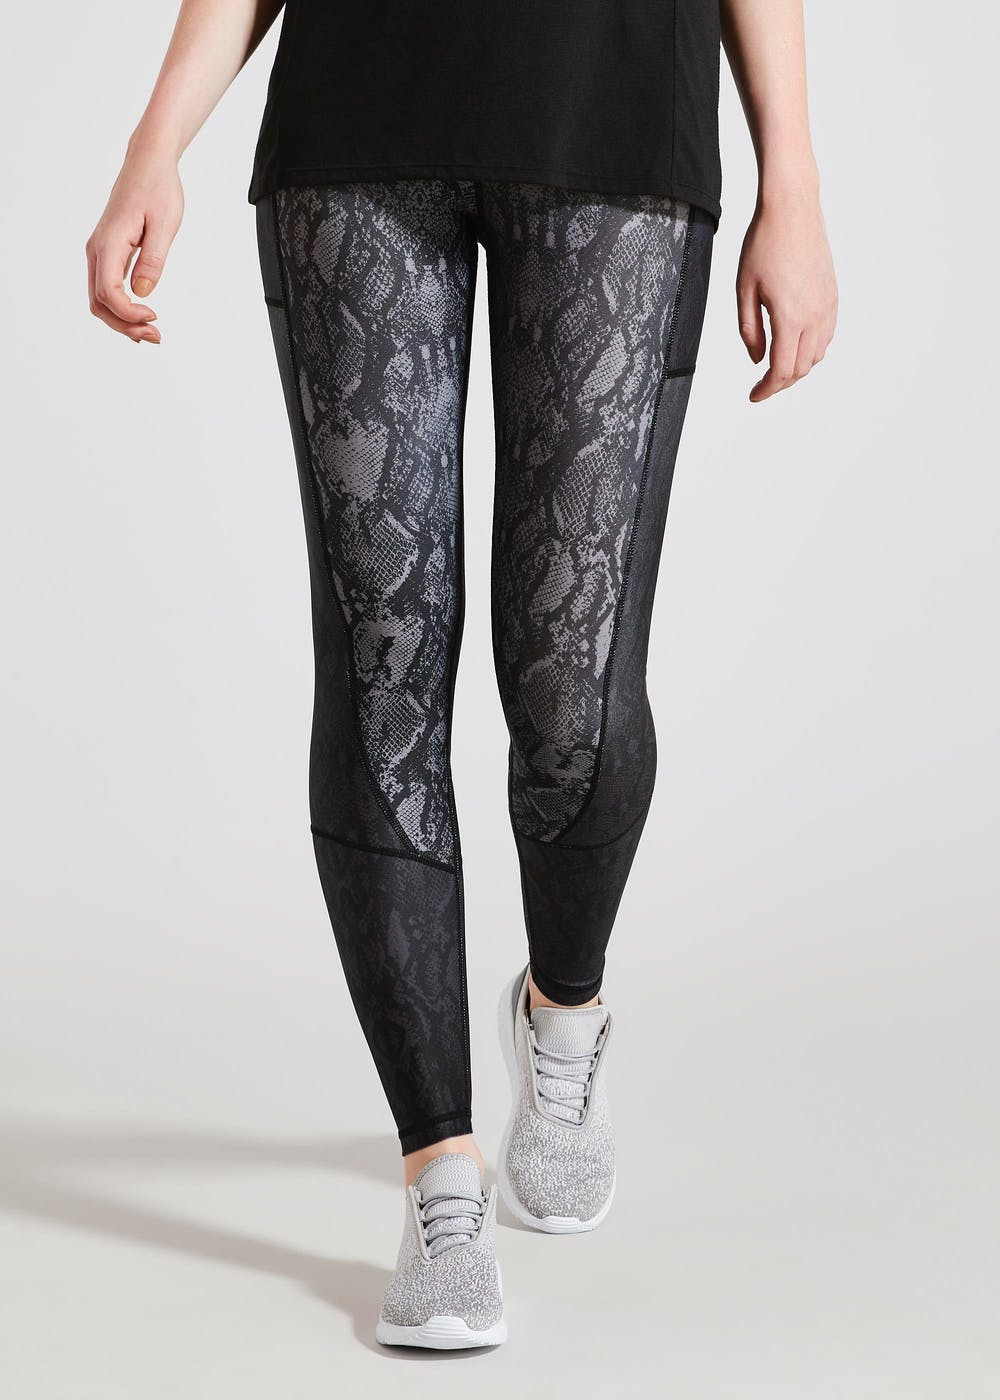 on feet at matching in colour new images of Souluxe Animal Print Sports Leggings